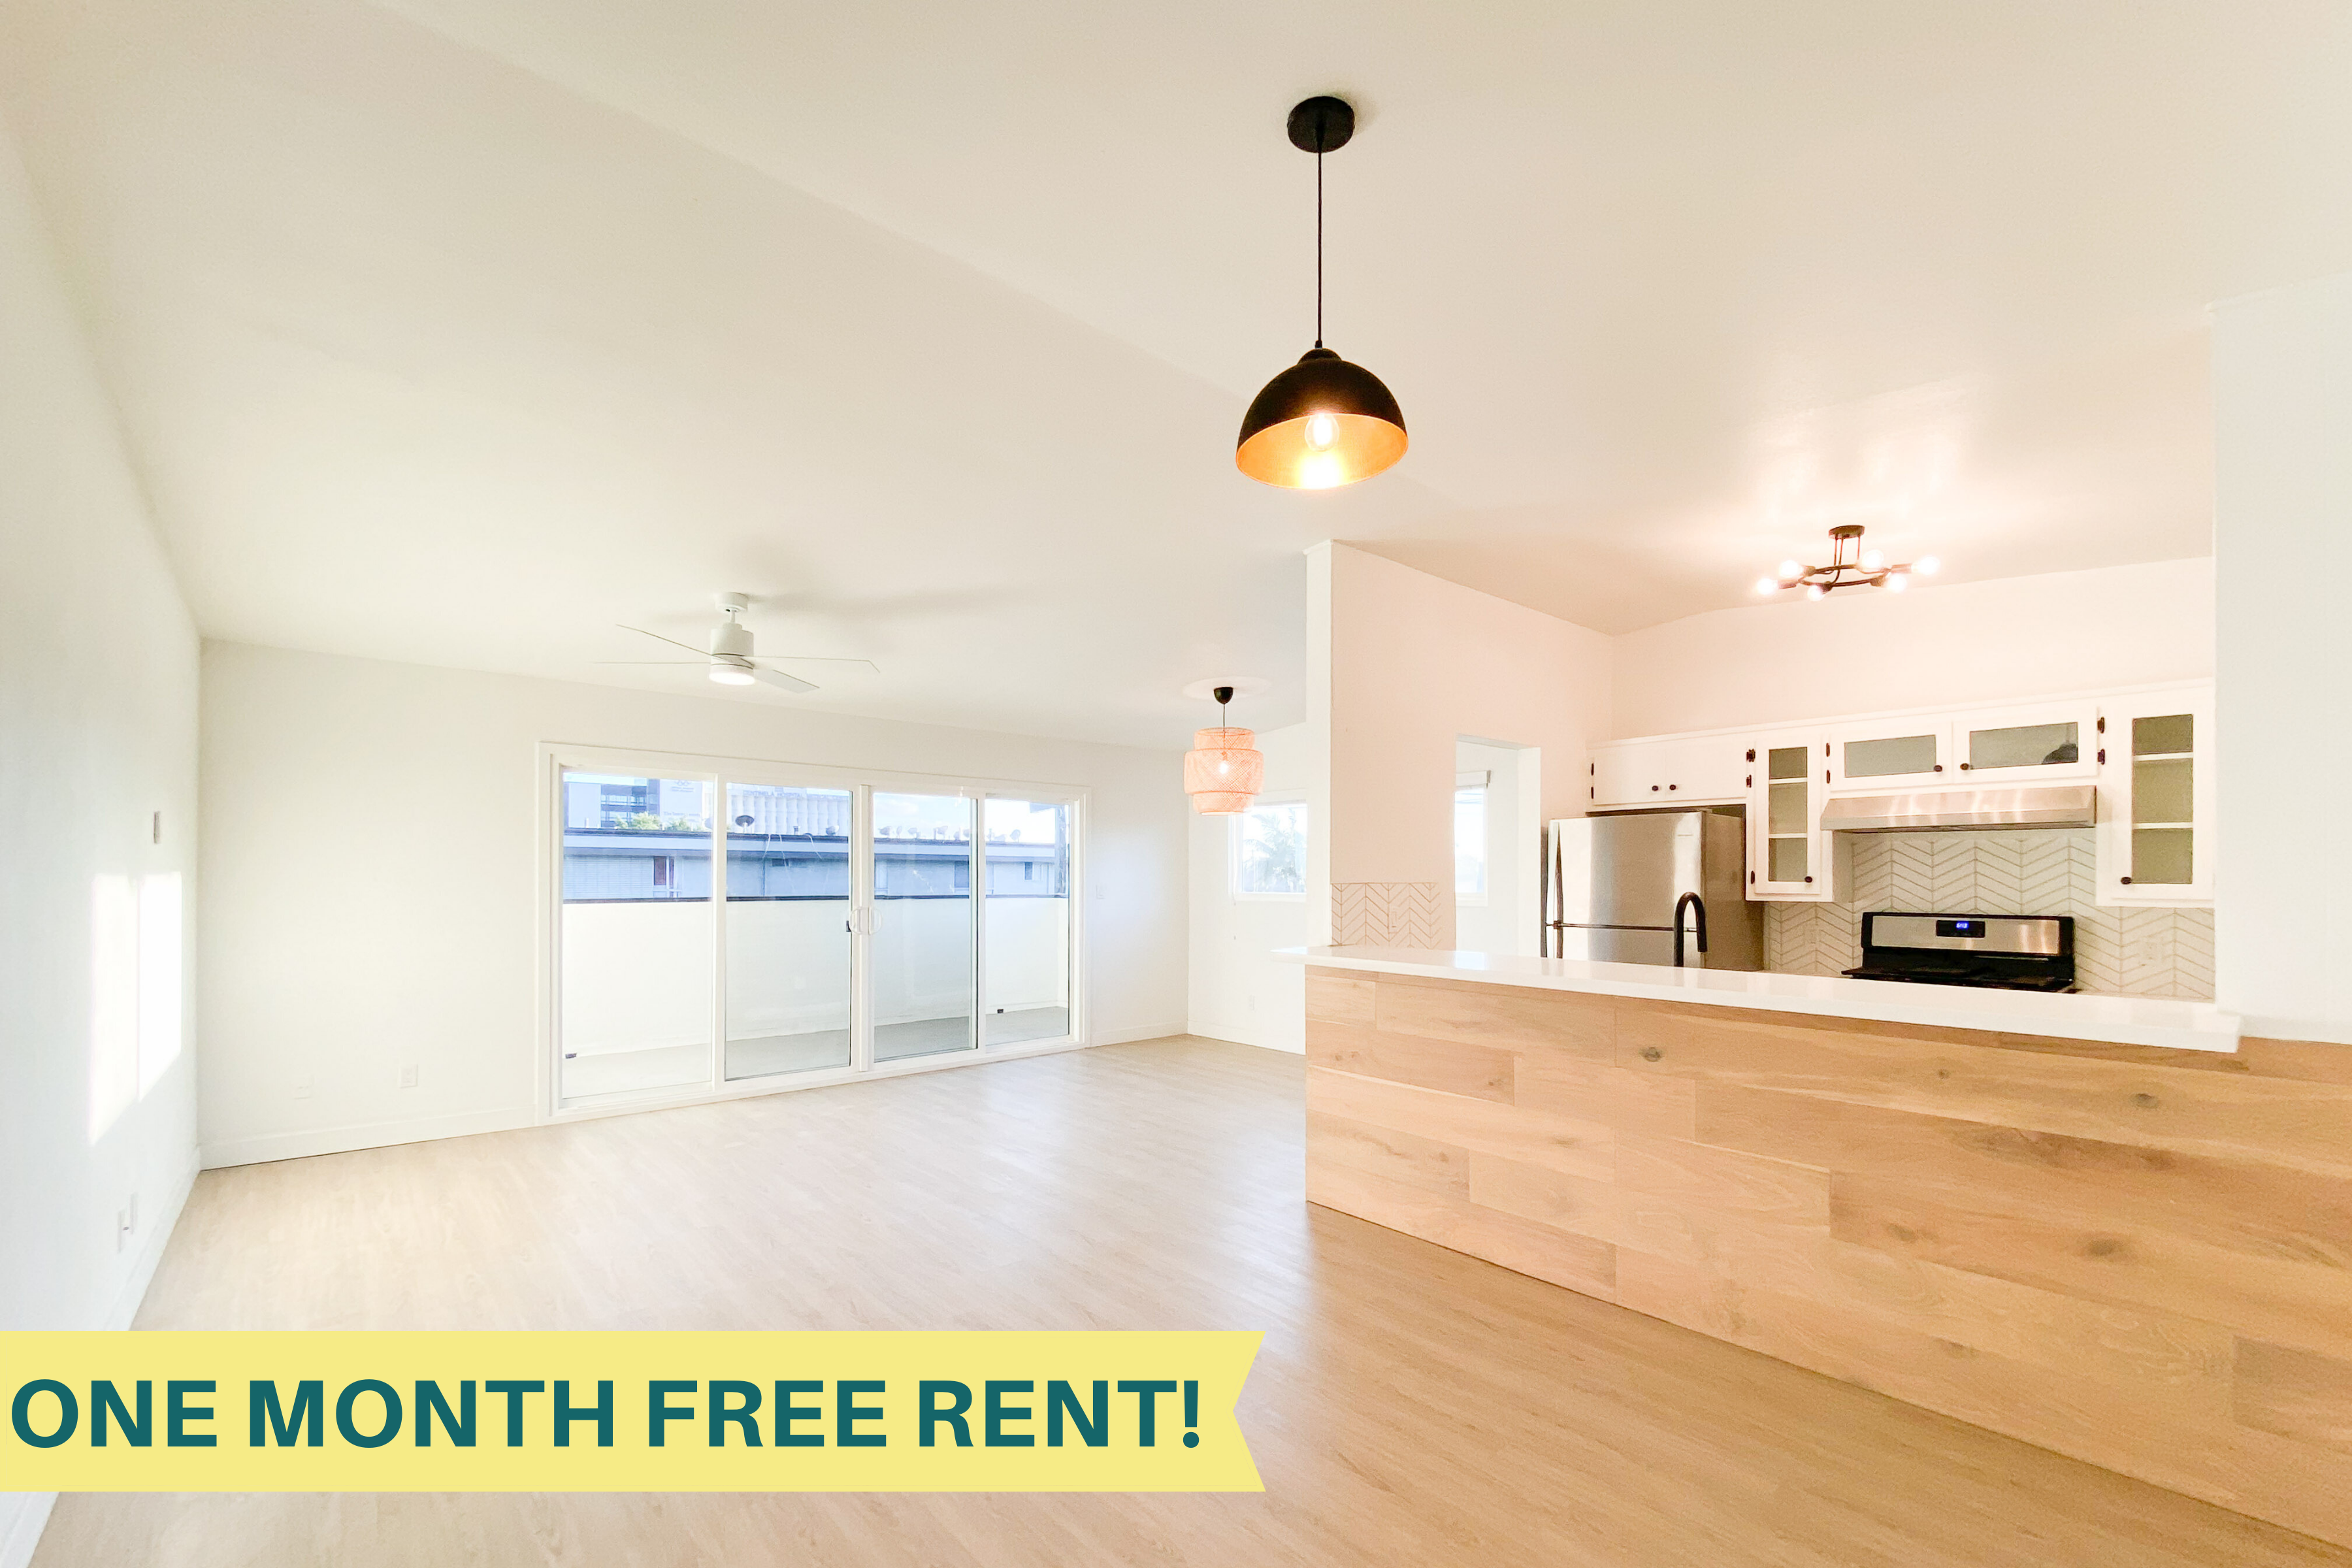 ONE MONTH FREE | Brand New Renovation | Upper Unit | Parking + Laundry Incl